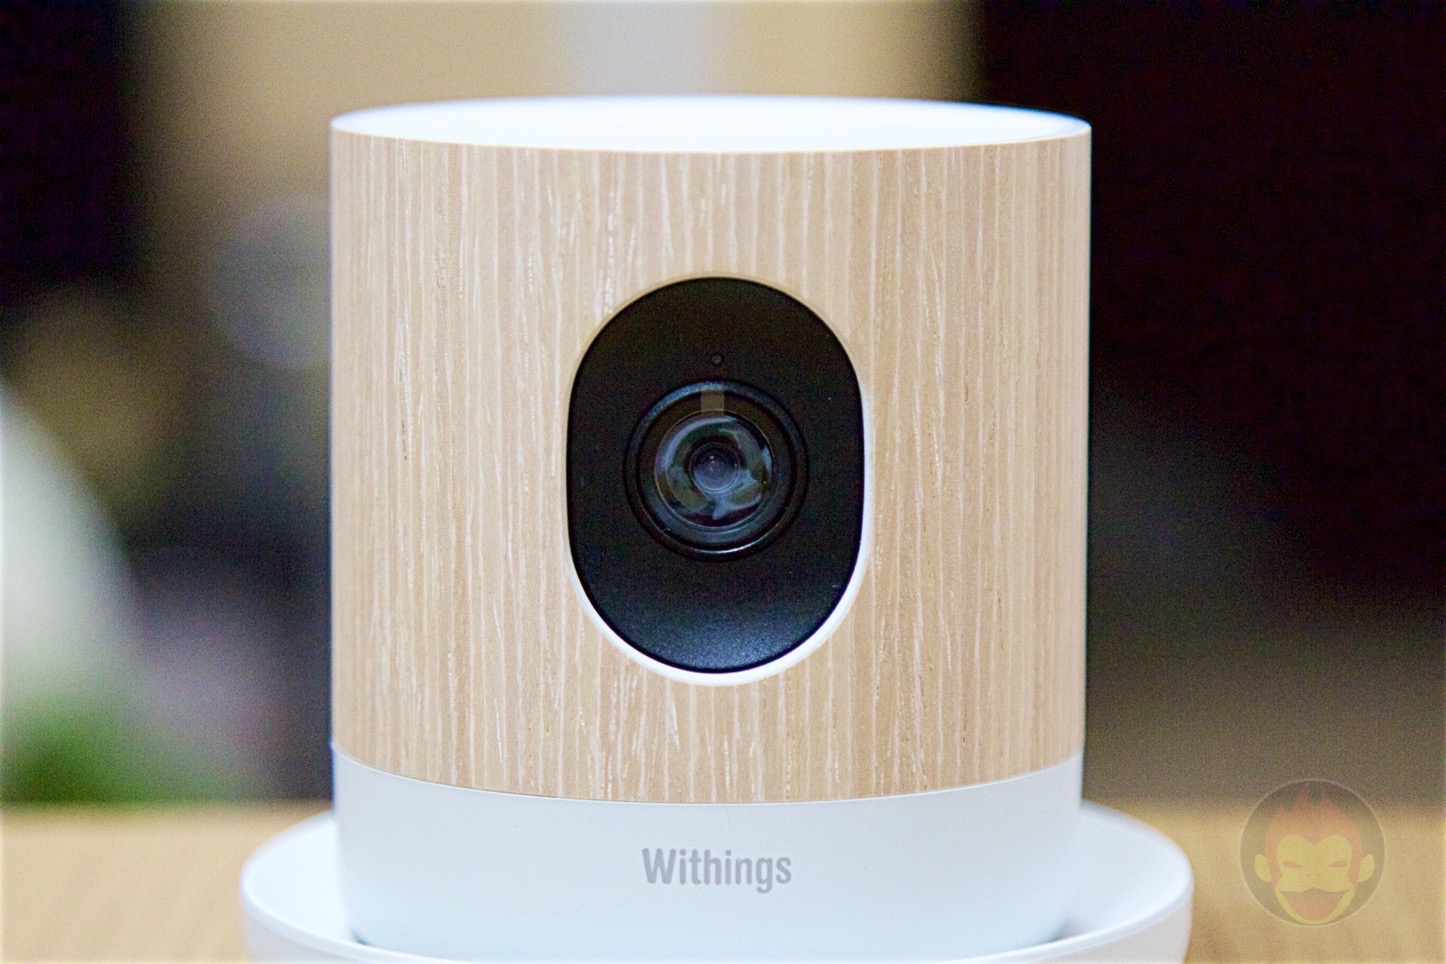 Withings Home Camera for checking pets and babies